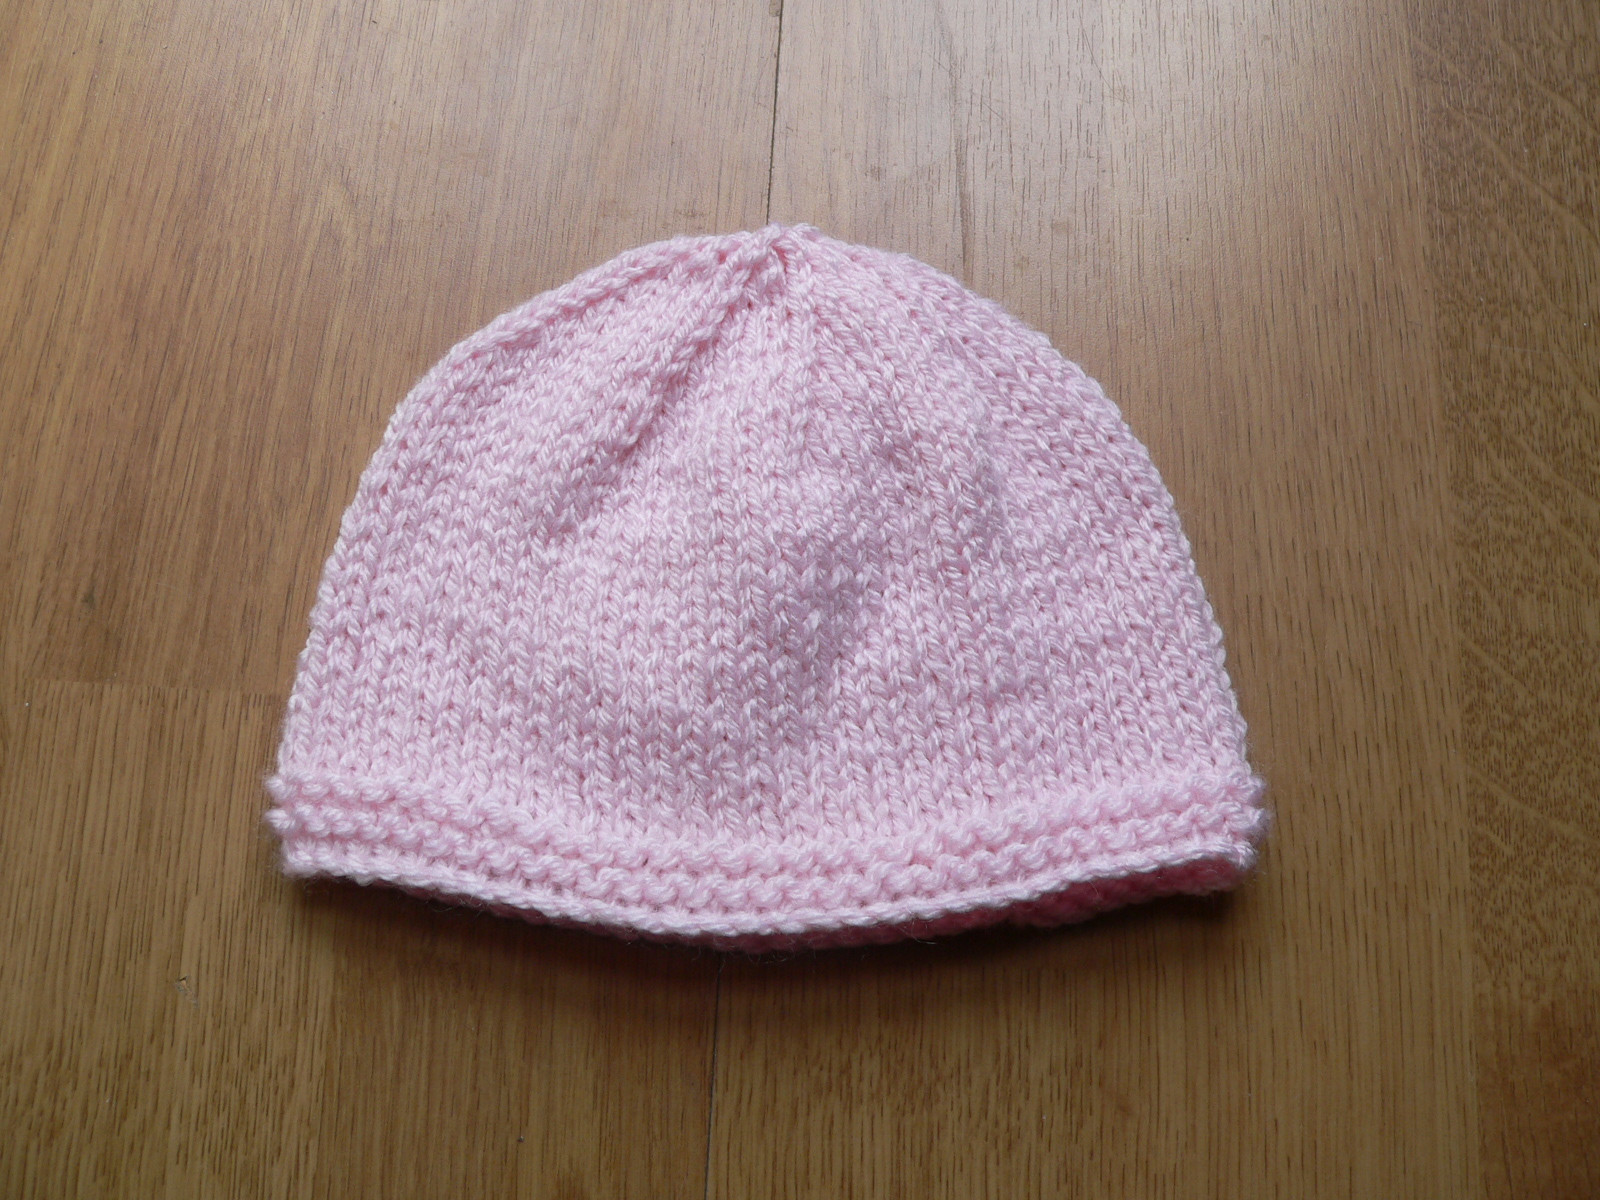 Lovely Simply Adorable 15 Super Cute Knitted Newborn Hats Knitting Baby Hats for Hospitals Of Beautiful 50 Pics Knitting Baby Hats for Hospitals